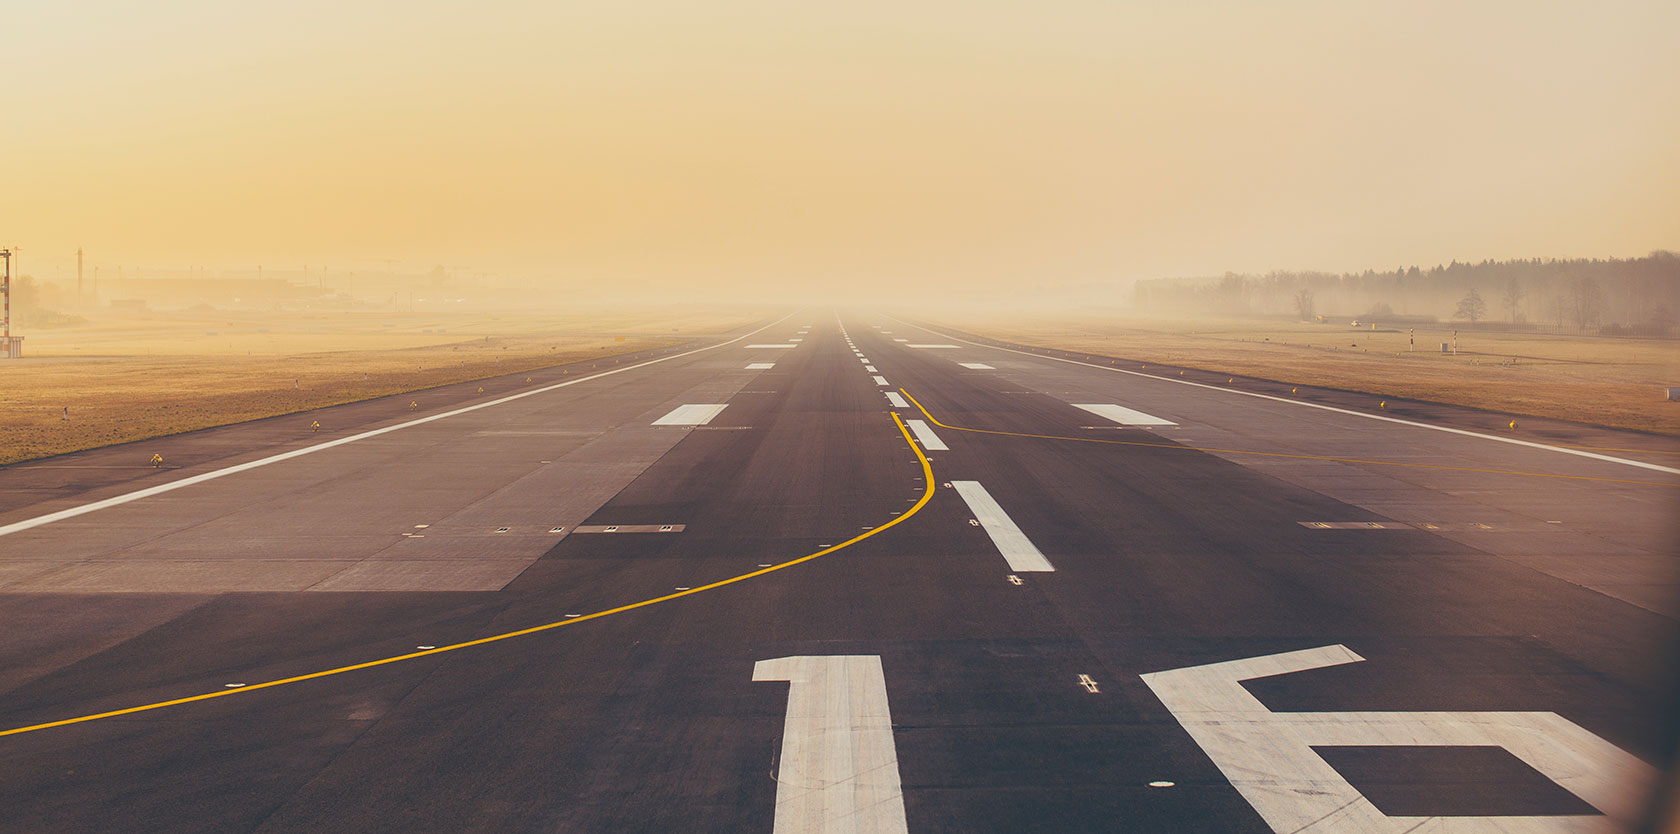 Airline Runway in Poor Visibility